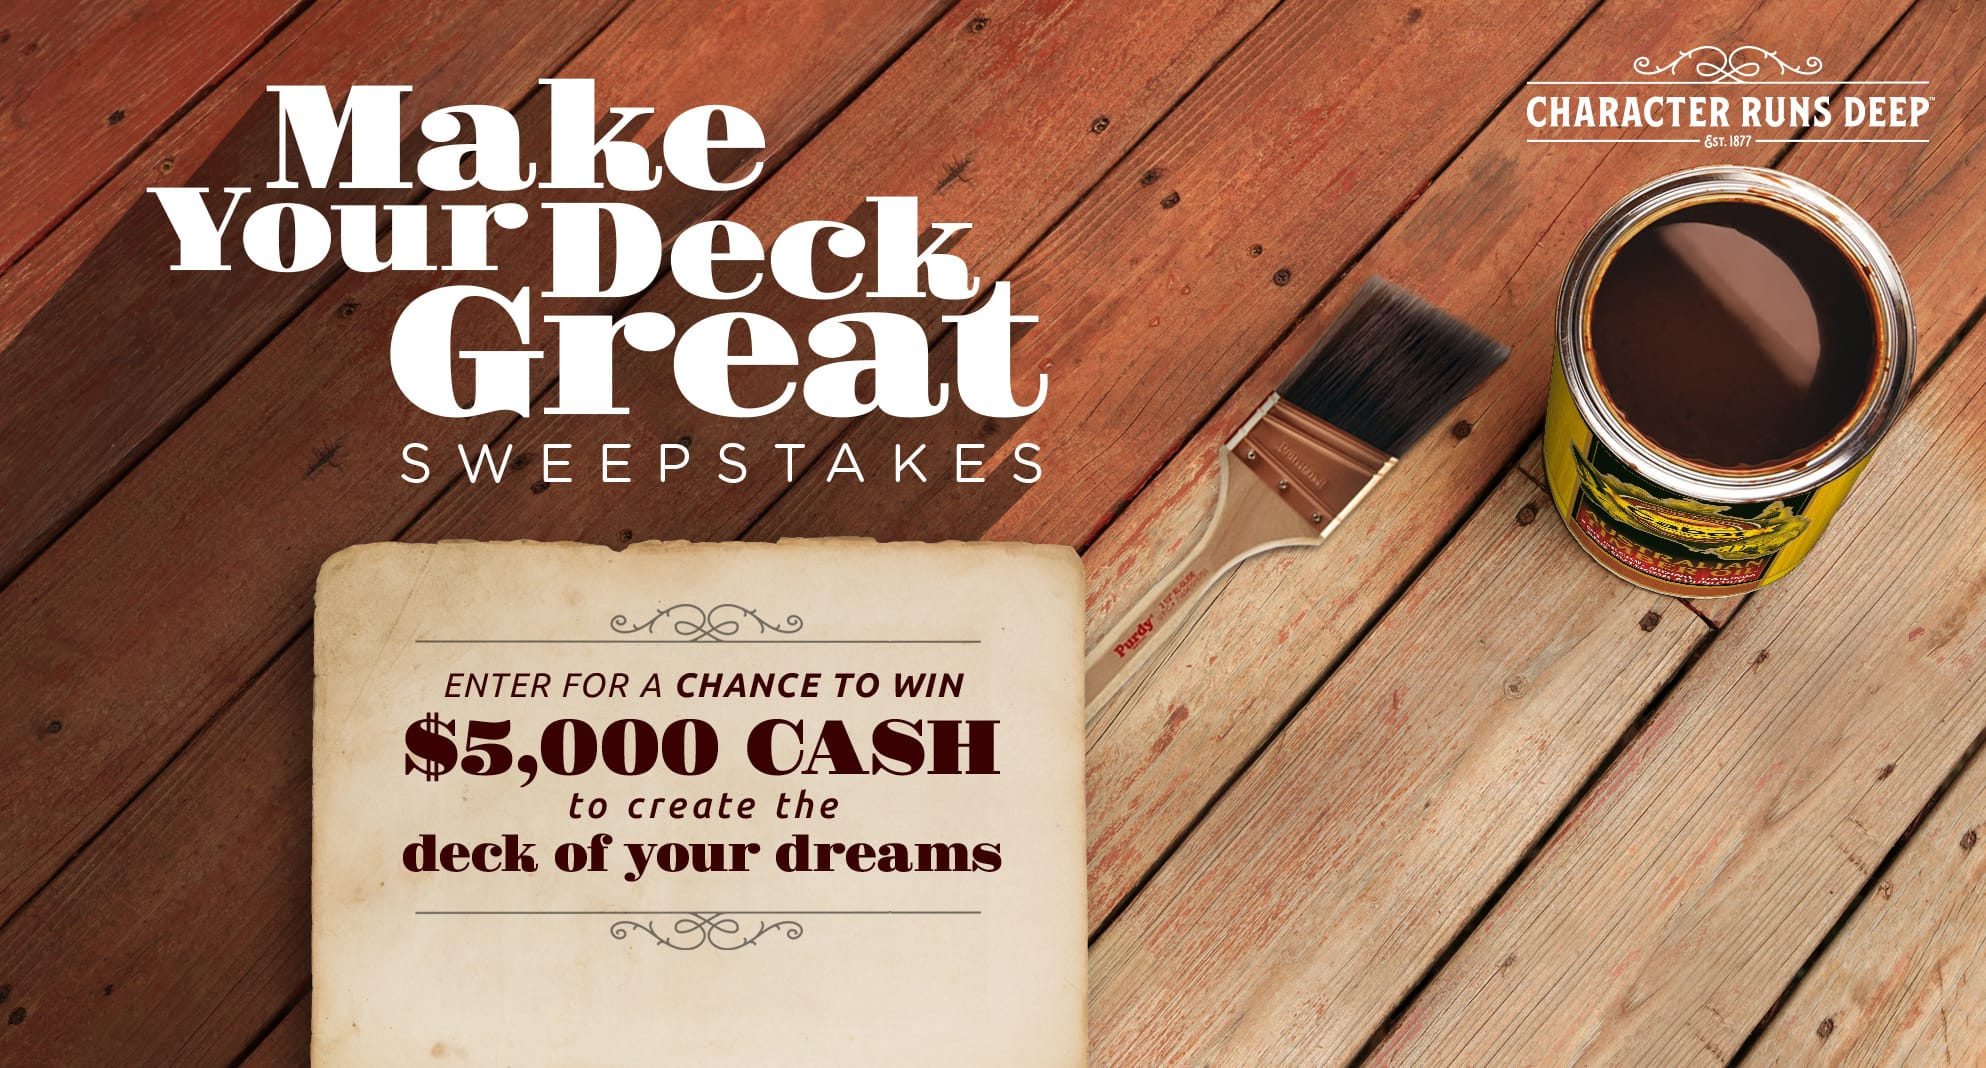 HGTV Make Your Deck Great Sweepstakes - Stand A Chance To Win $5000 Cash